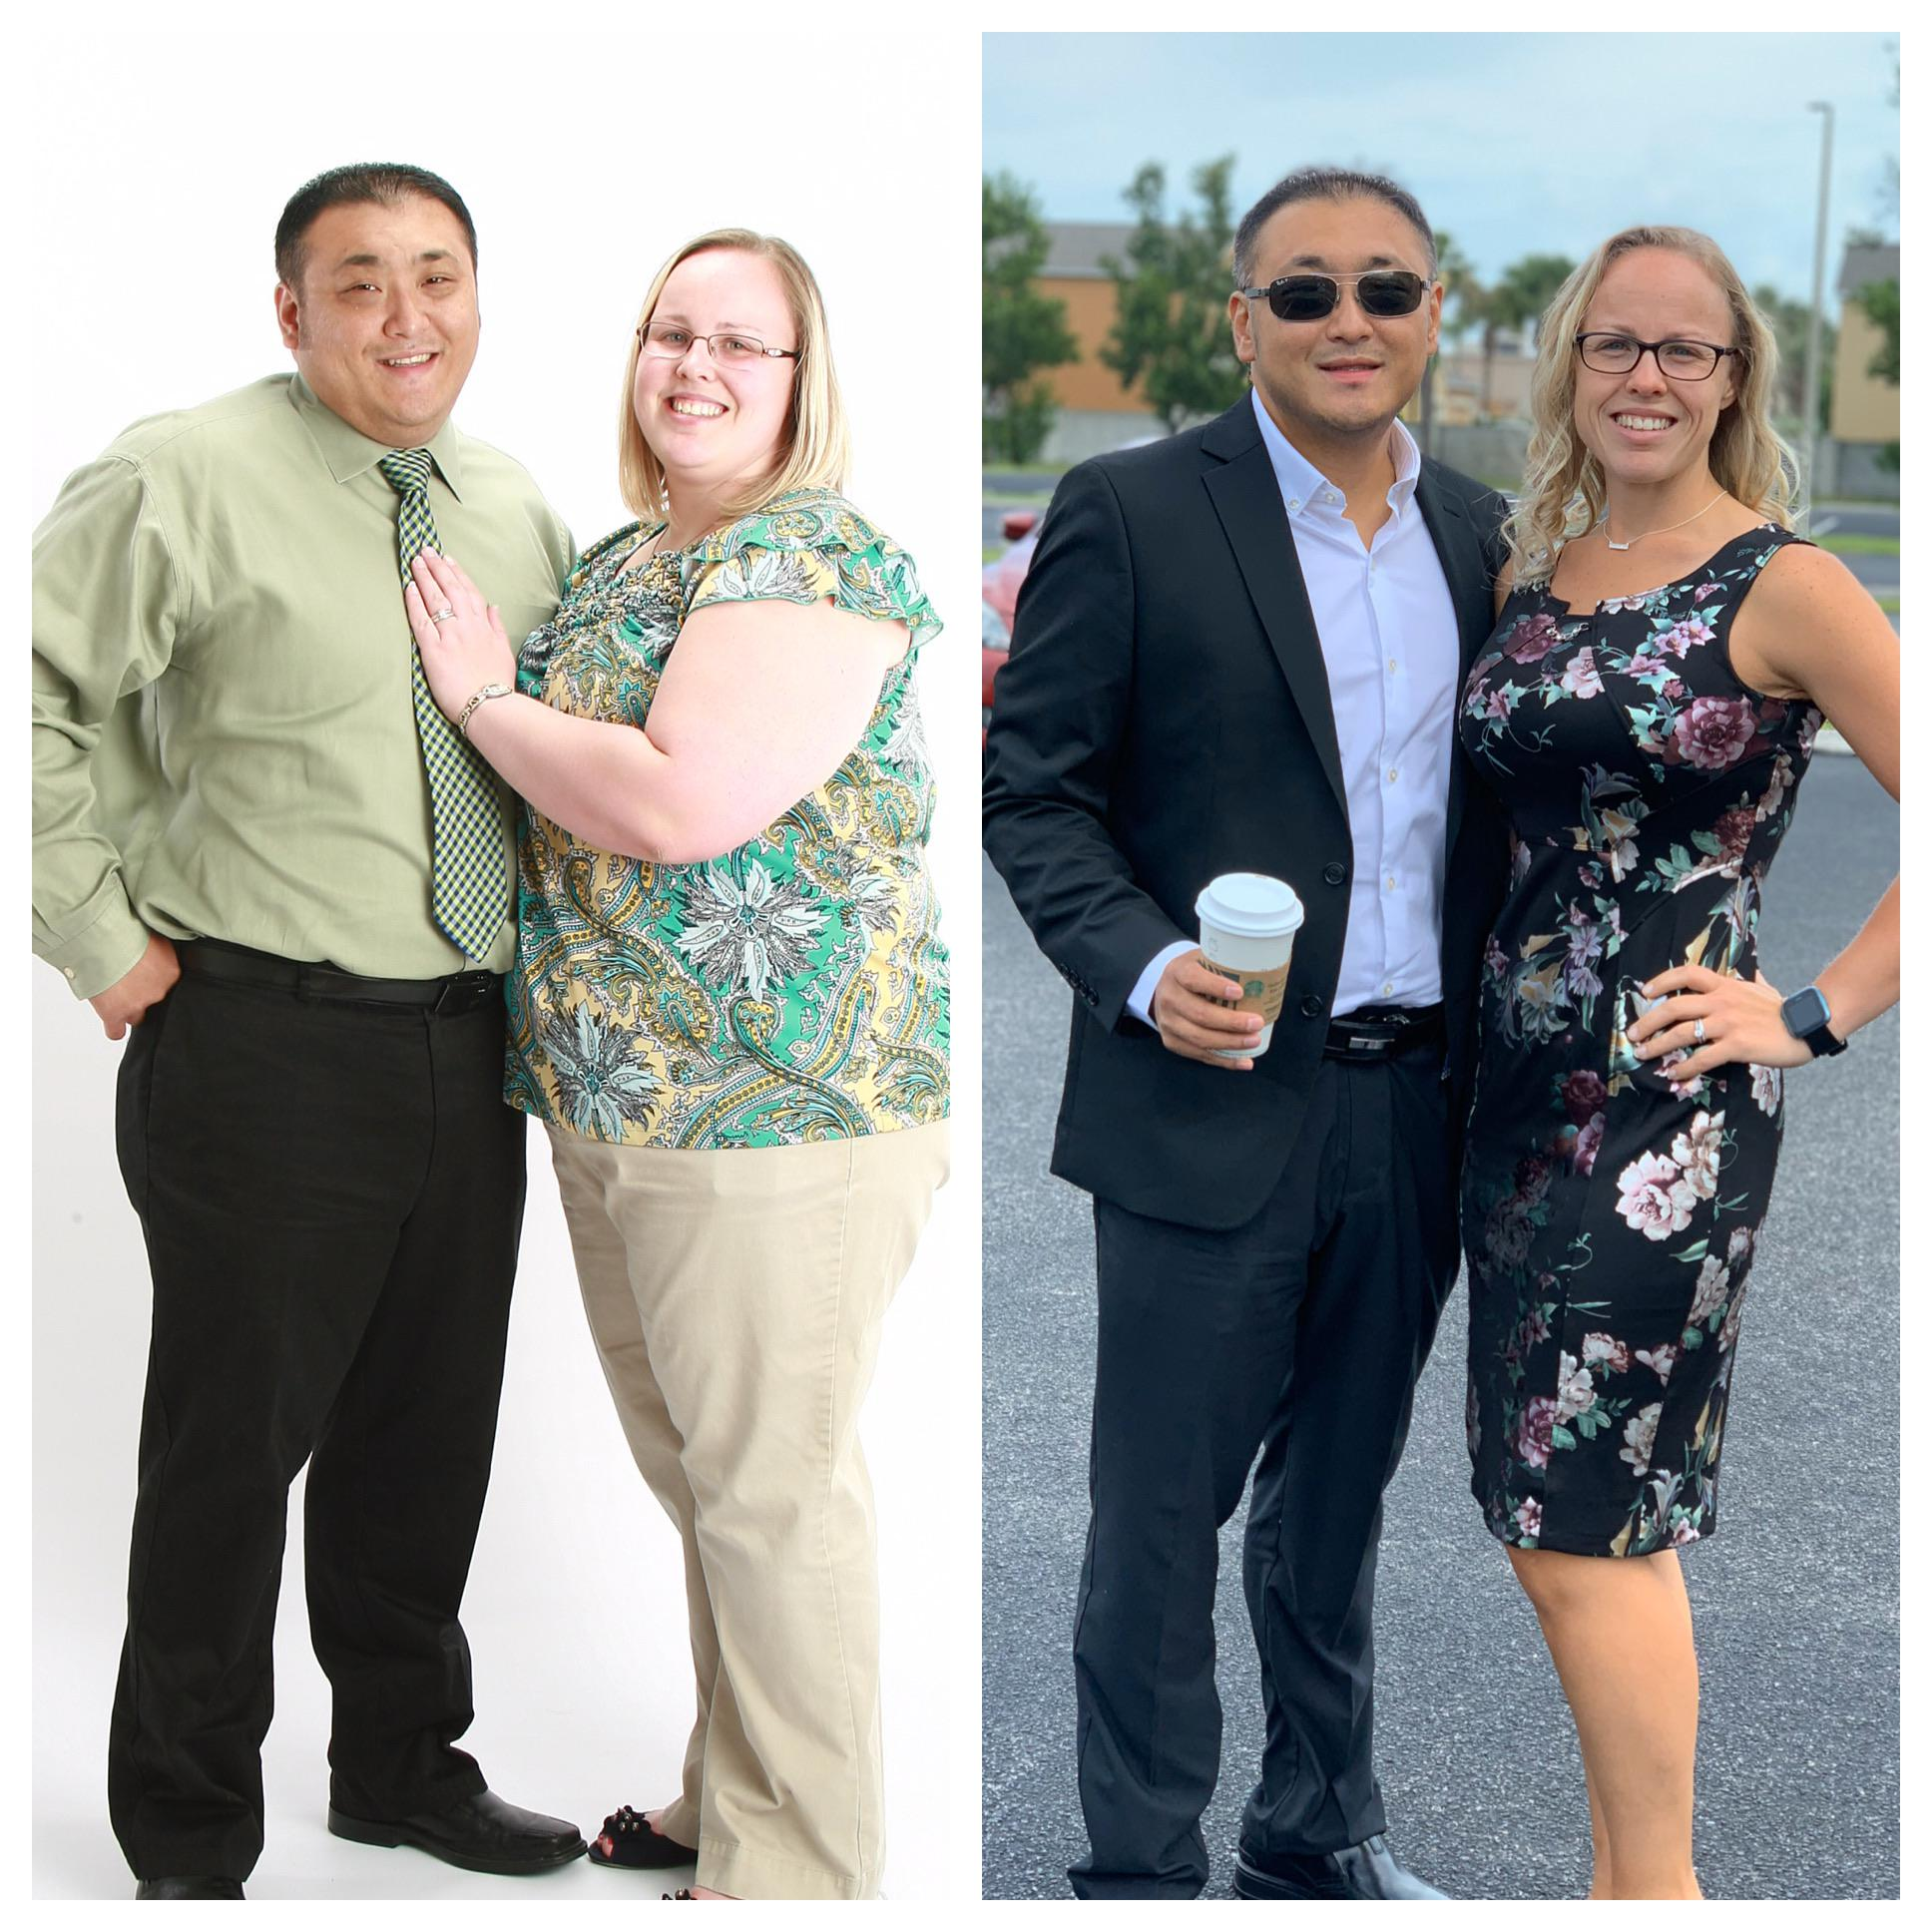 5 foot 7 Female 165 lbs Weight Loss Before and After 300 lbs to 135 lbs